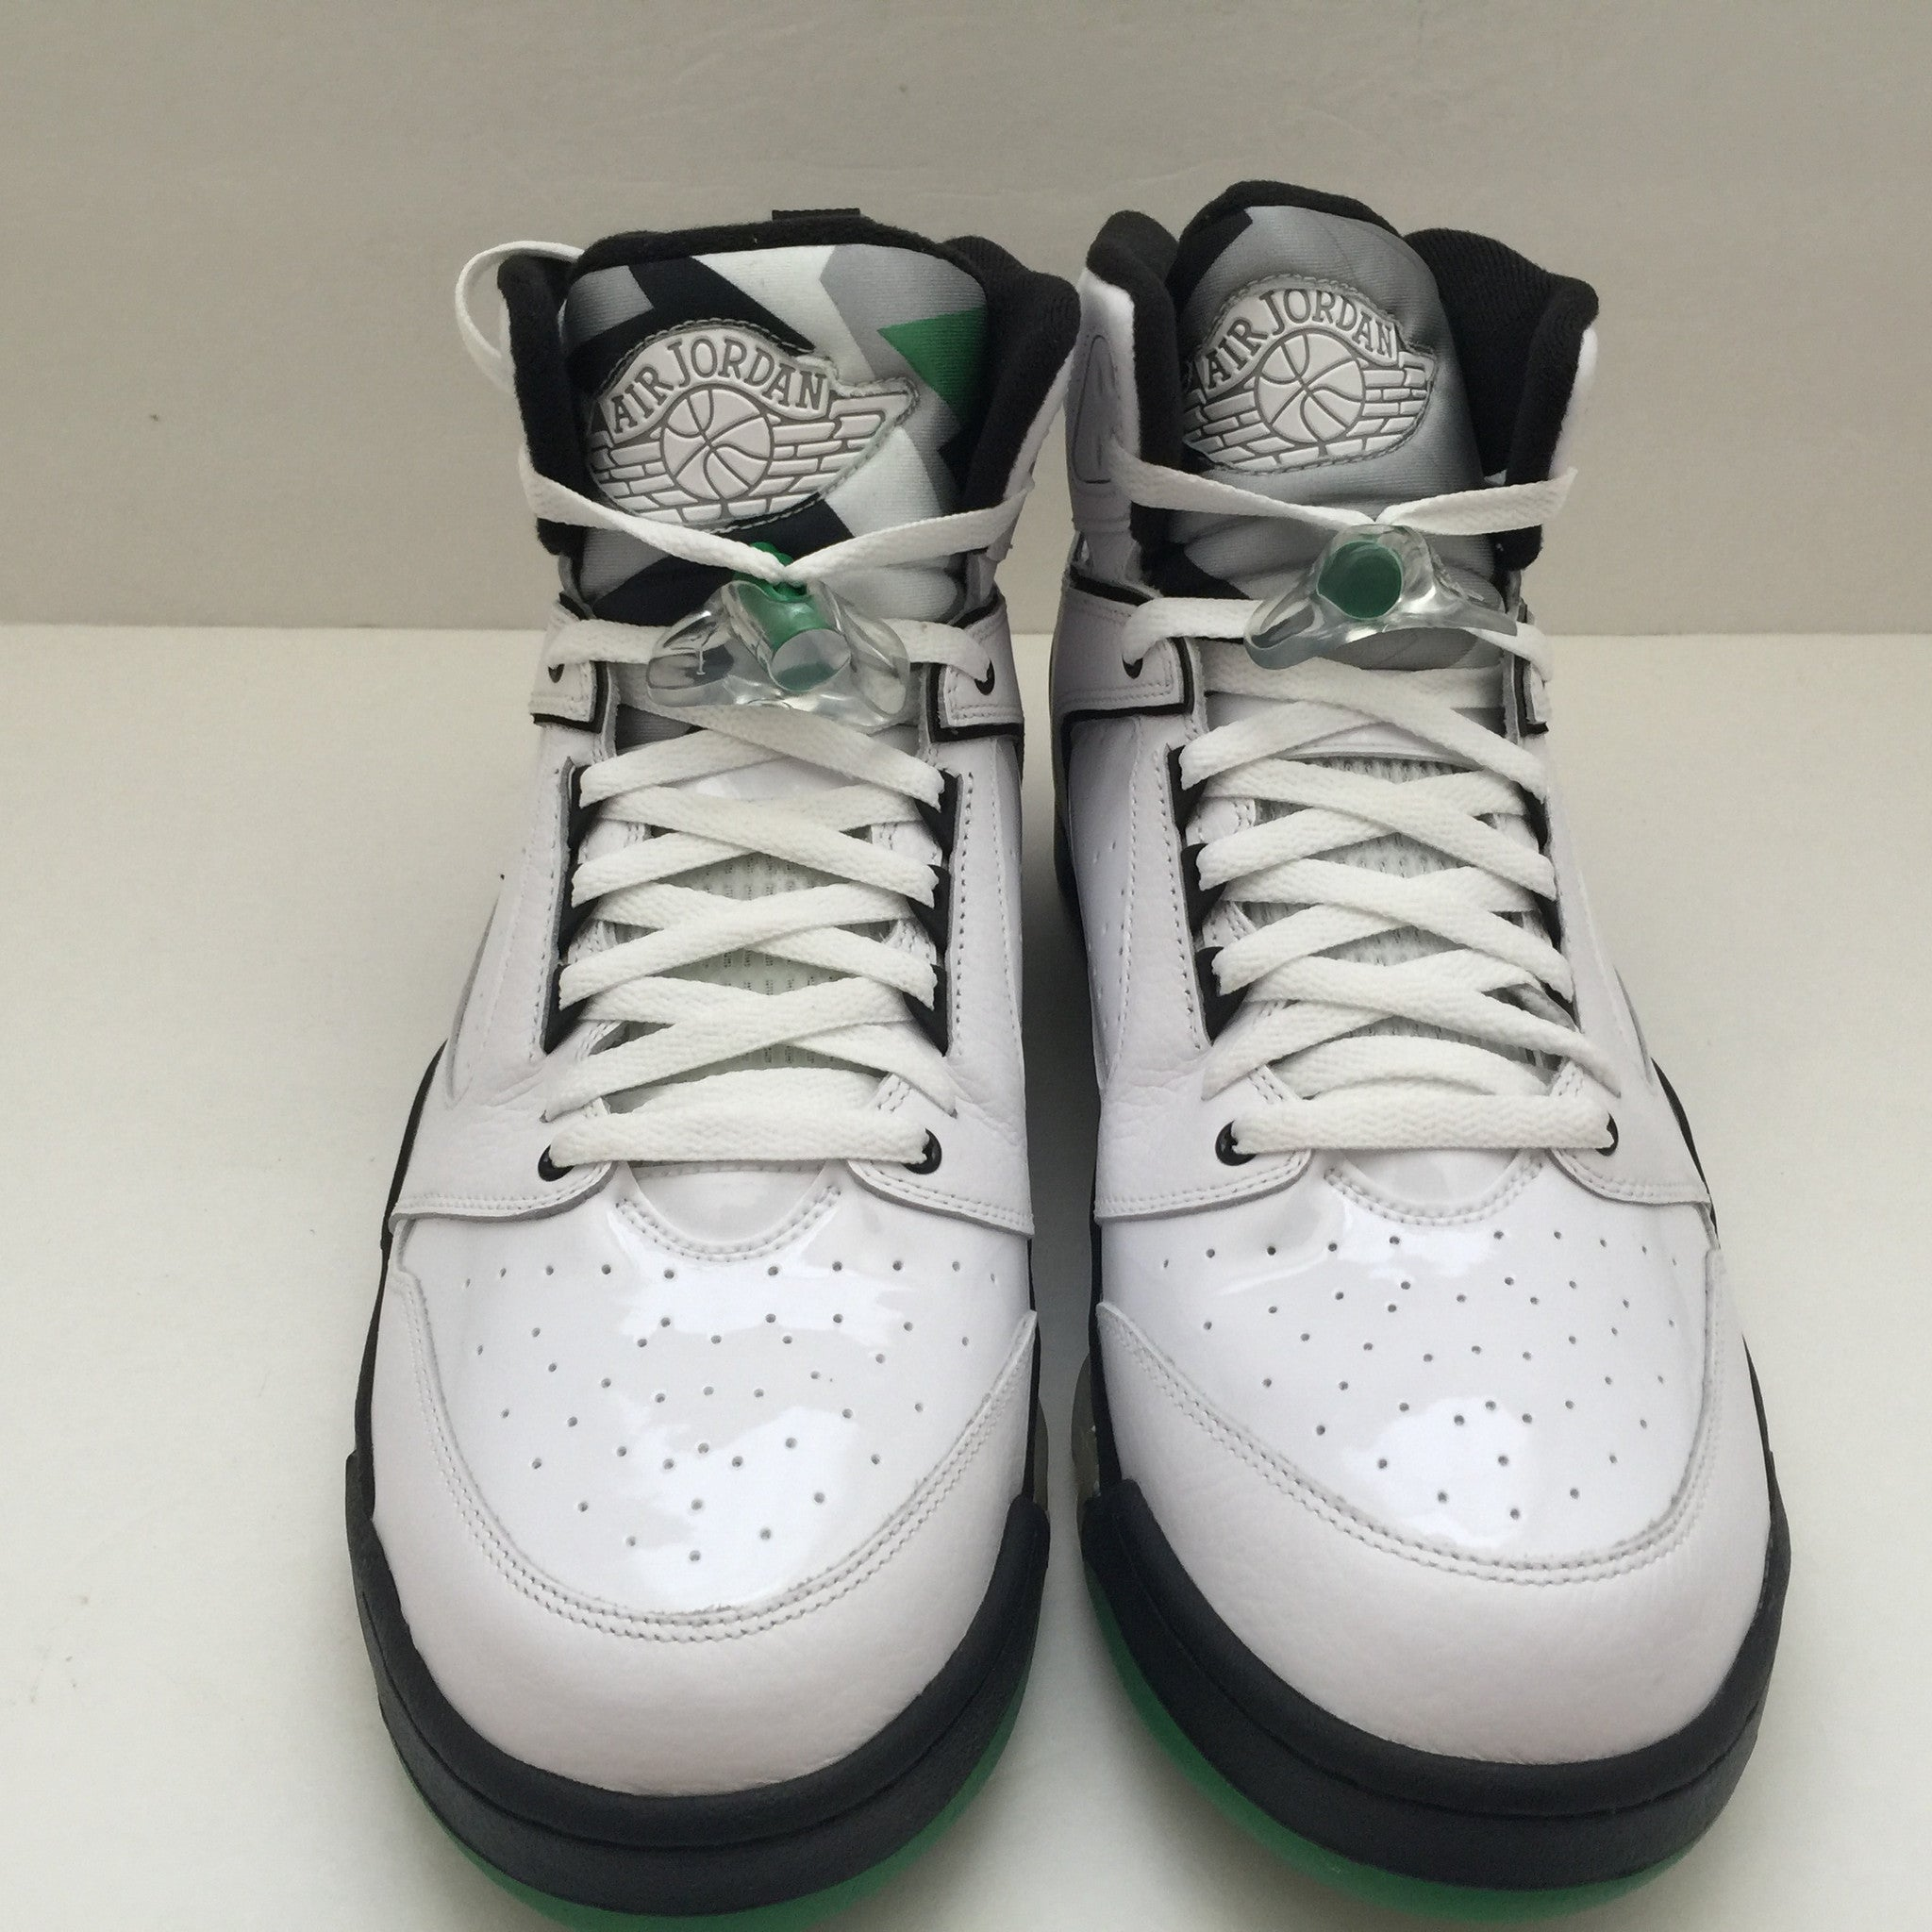 DS Nike Air Jordan Sixty Plus Size 13 - DOPEFOOT  - 3